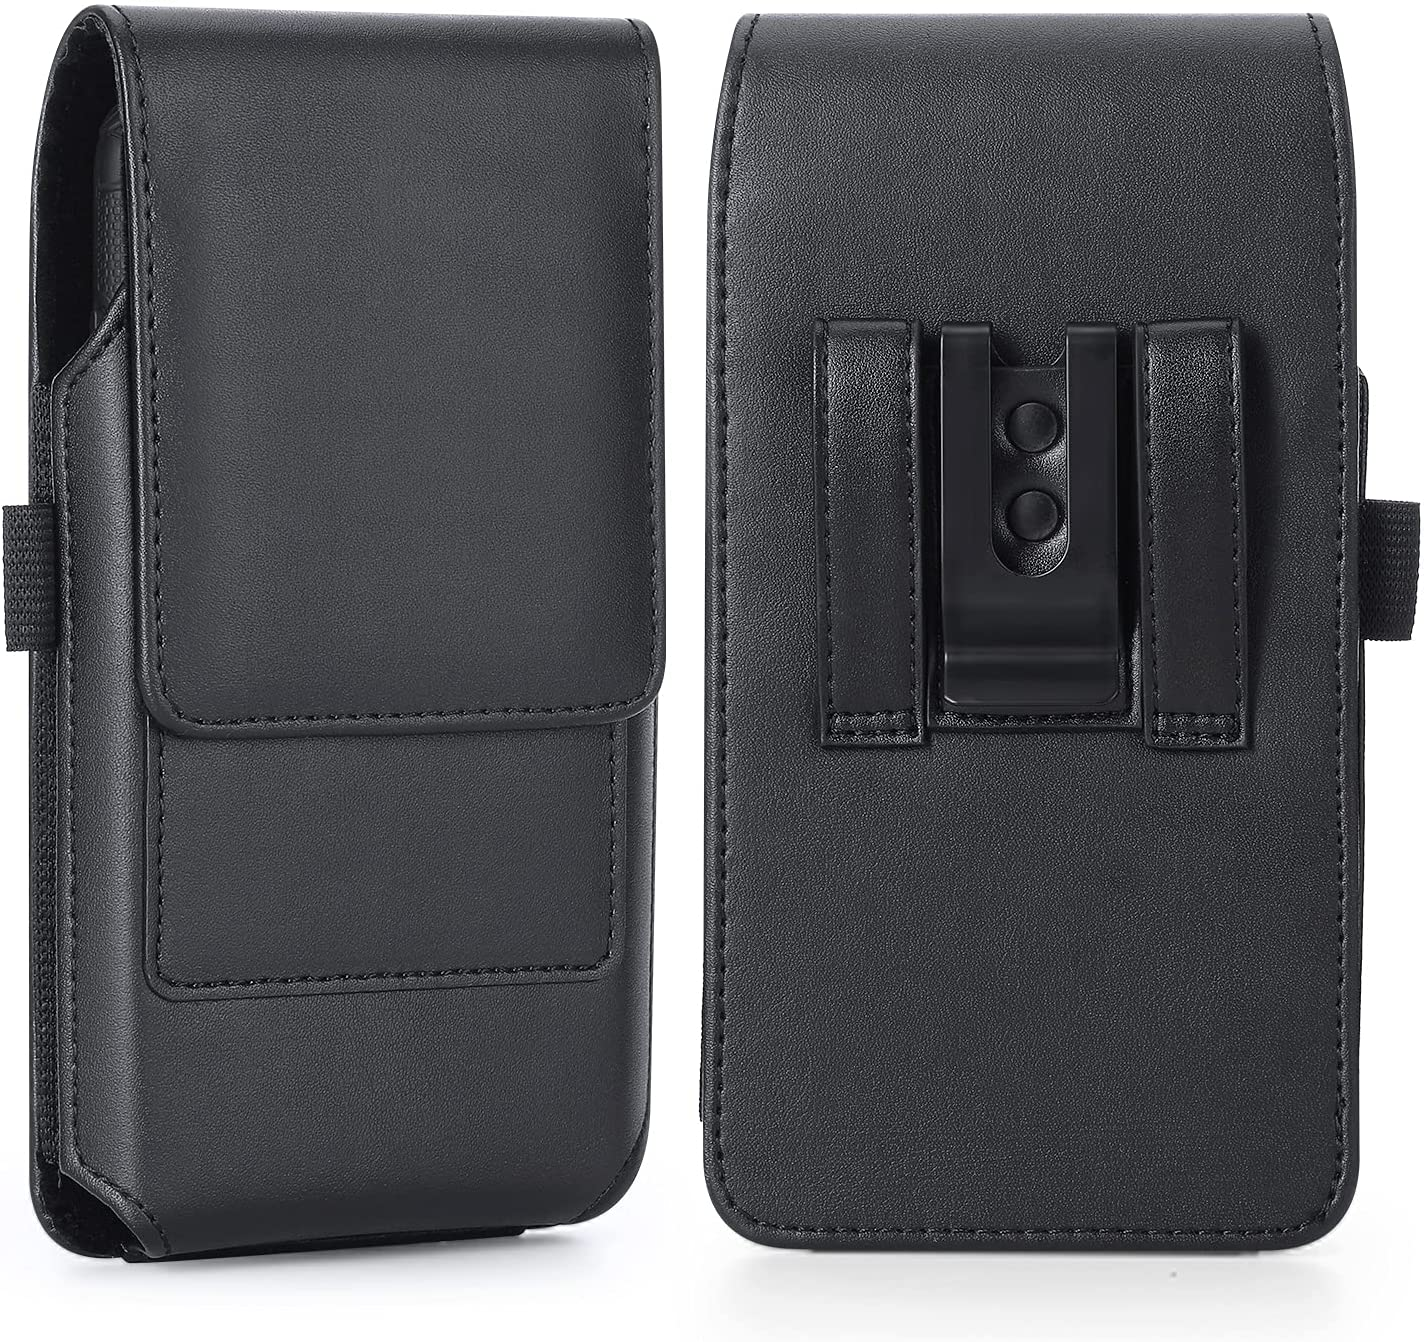 BECPLT for iPhone 12 Pro Max Holster Case, iPhone 11 Pro Max Xs Max 8 Plus 7 Plus Belt Clip Case, Premium Leather Holster Pouch Case Belt Clip with Card Holder for iPhone 6 Plus 6S Plus (Black)